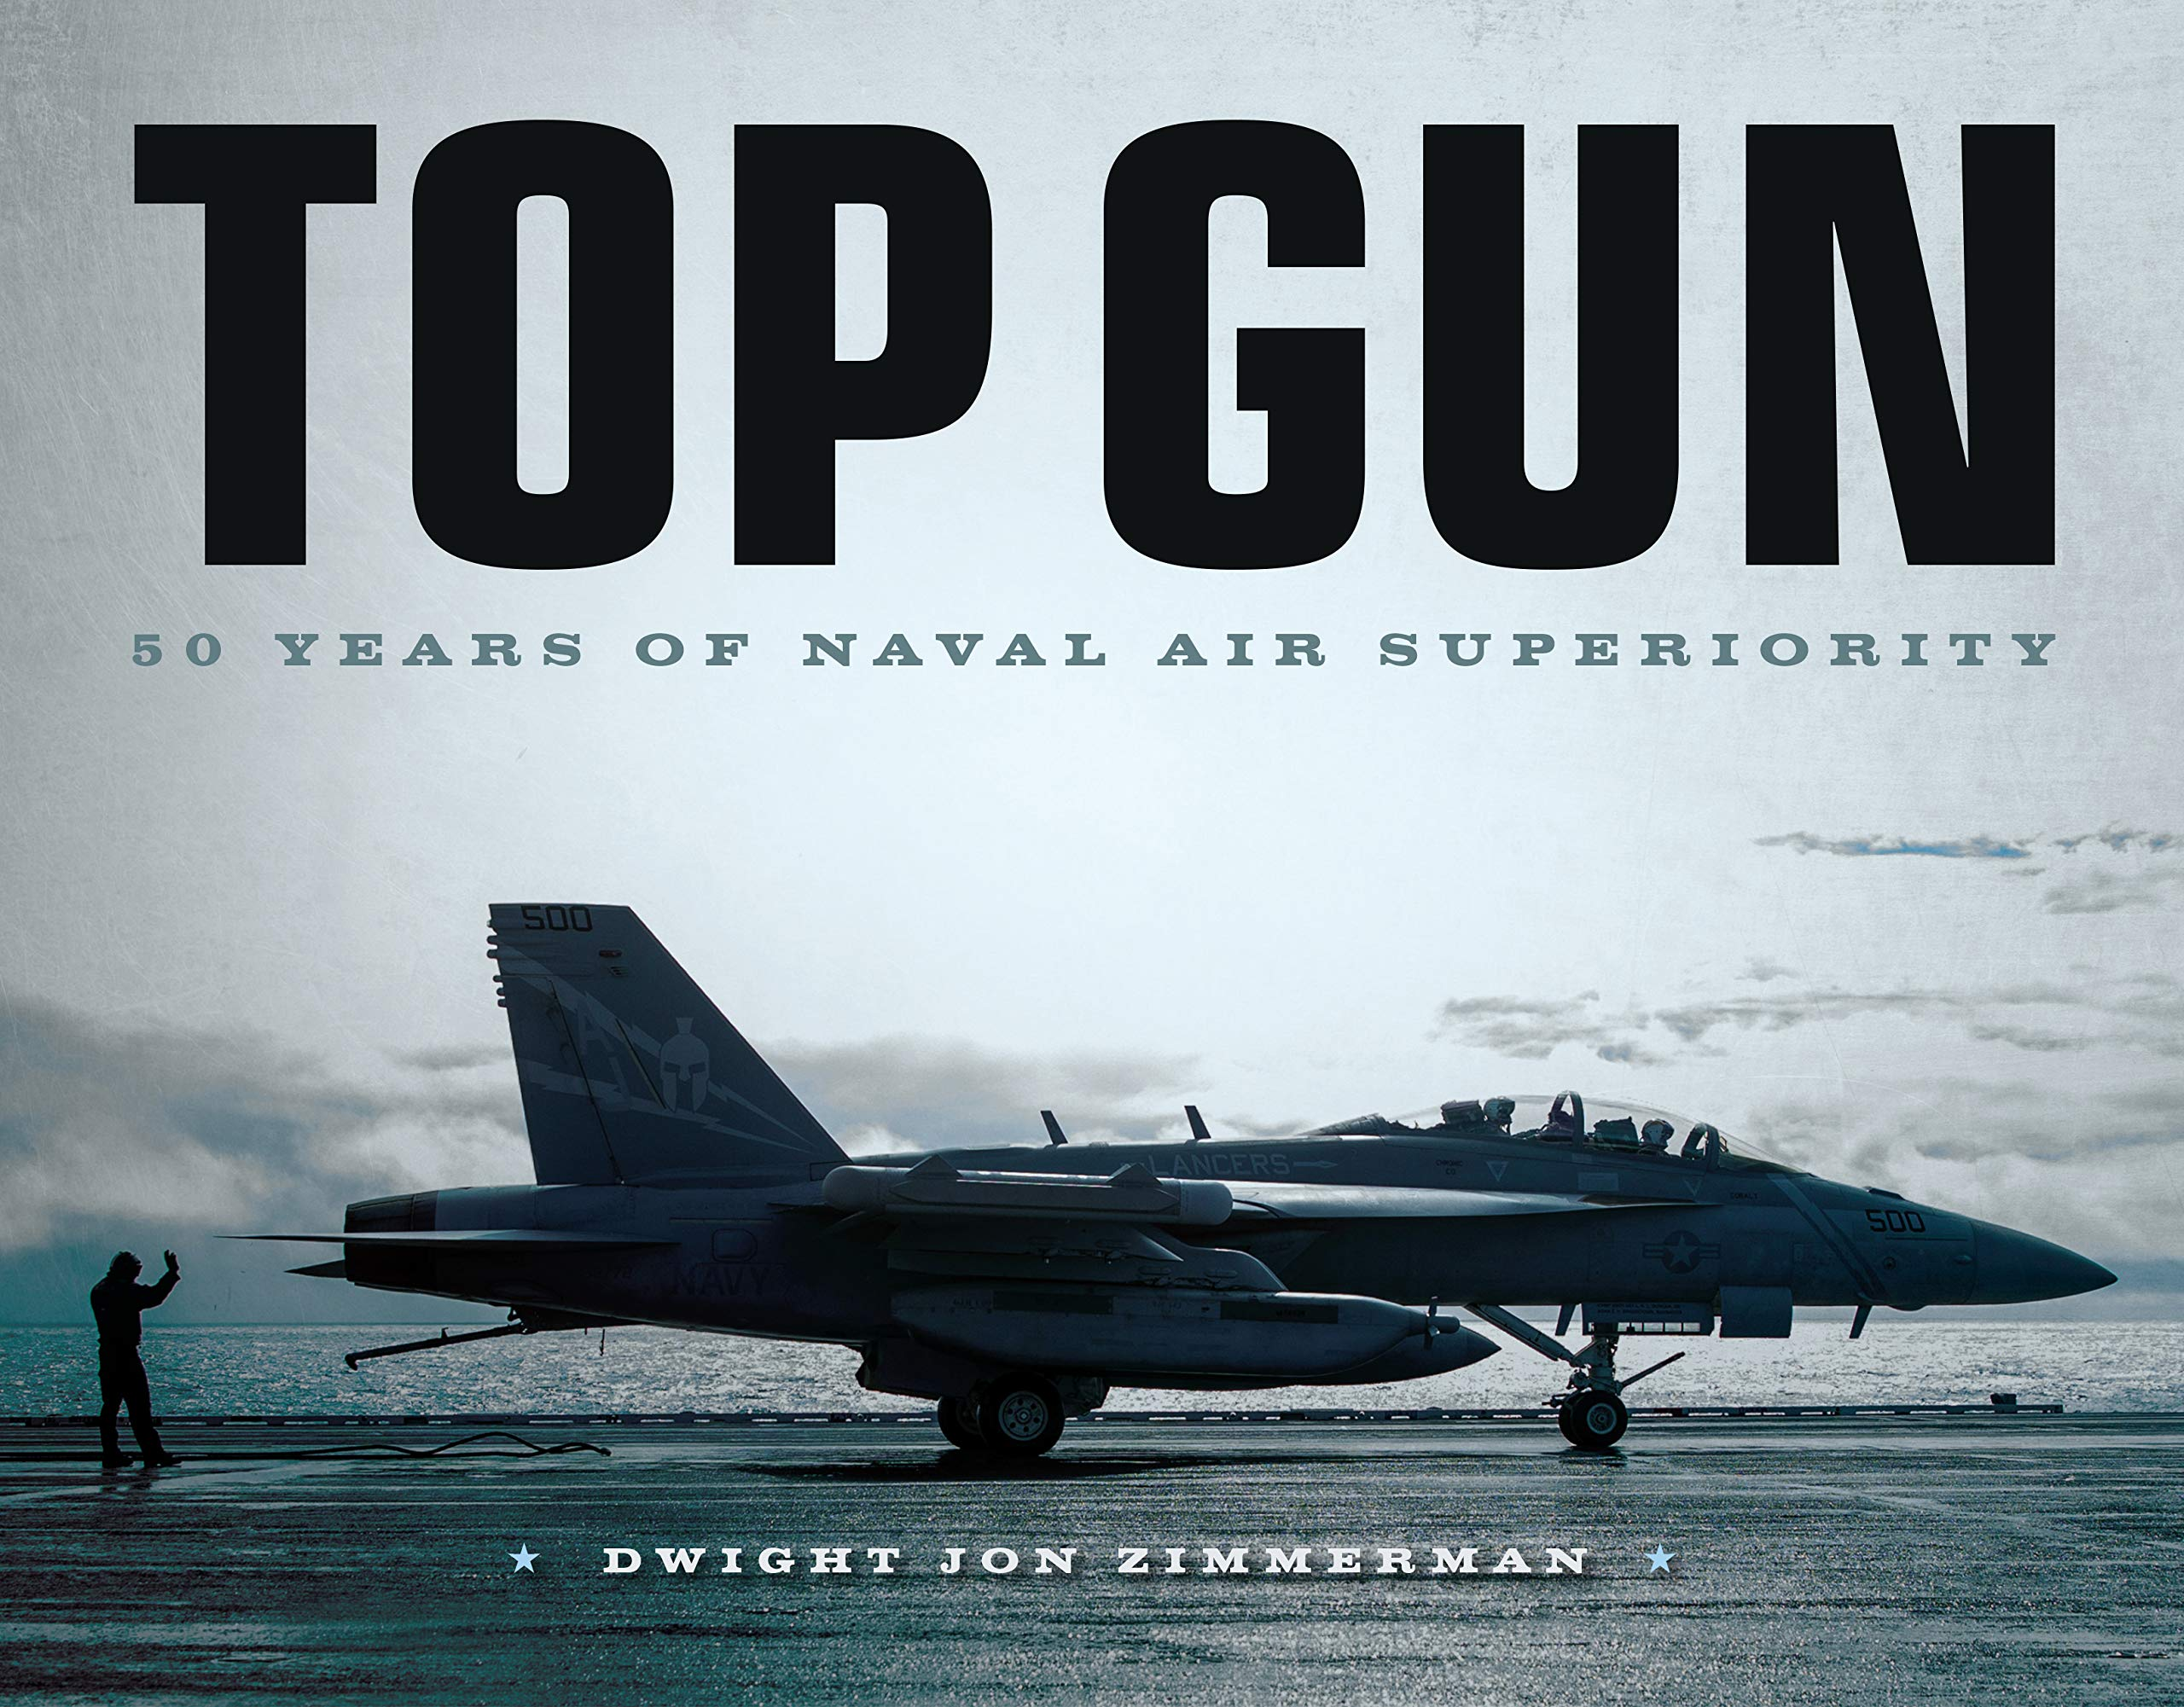 TOP GUN: 50 YEARS OF NAVAL AIR SUPERIORITY